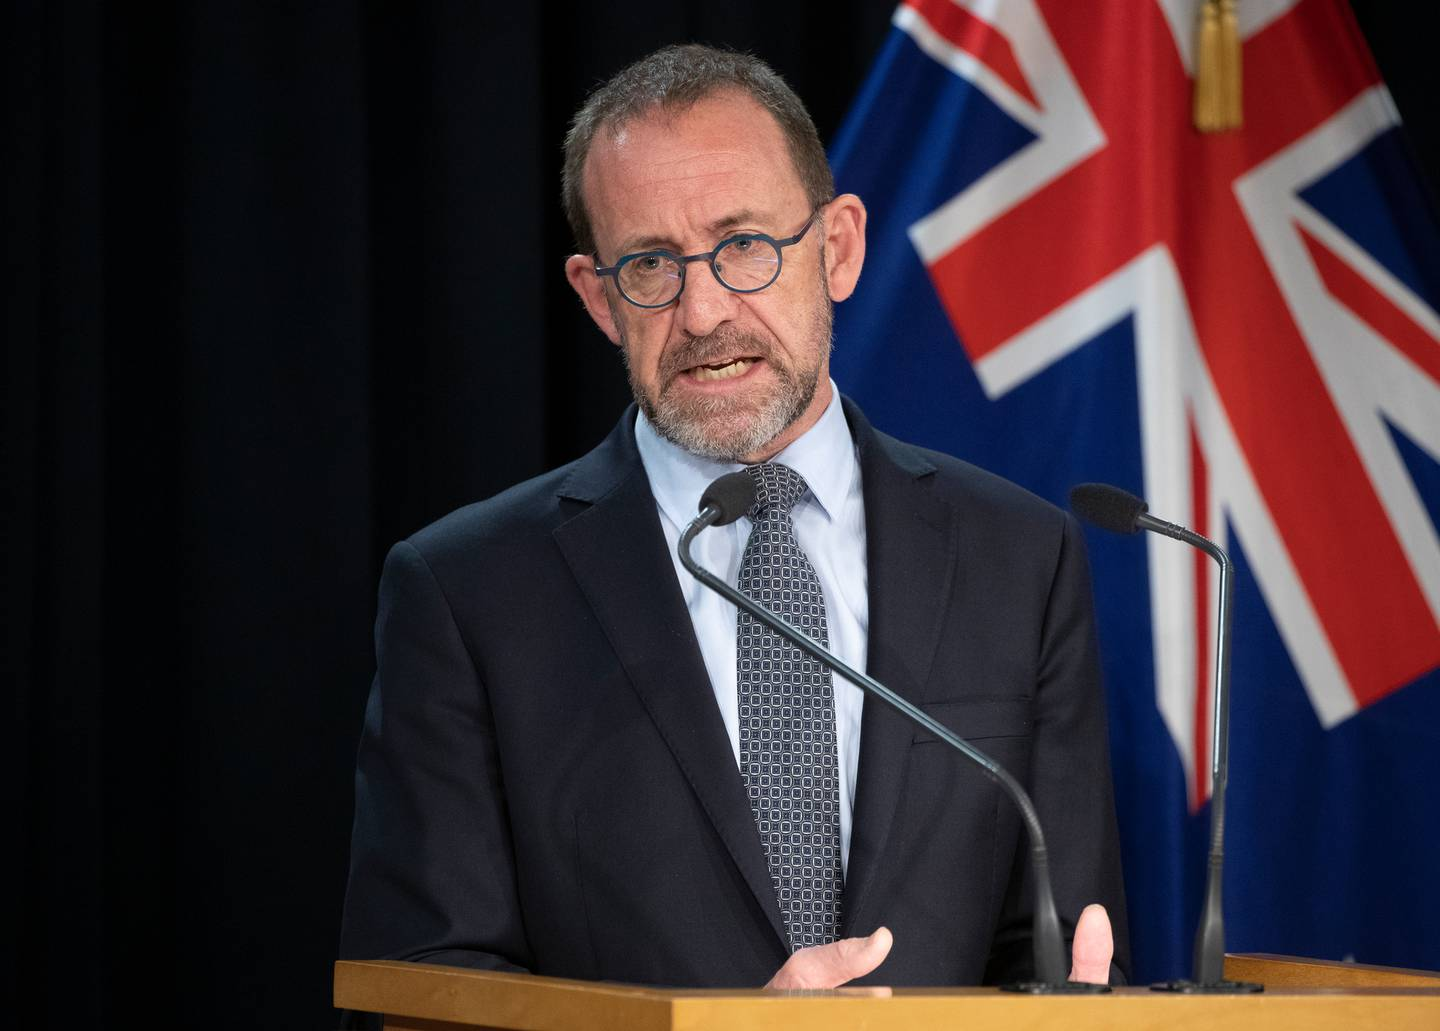 Health Minister Andrew Little questions whether ending the grace period will lead to any patient suffering, and if it does, it's on the industry, not him. Photo / Mark Mitchell